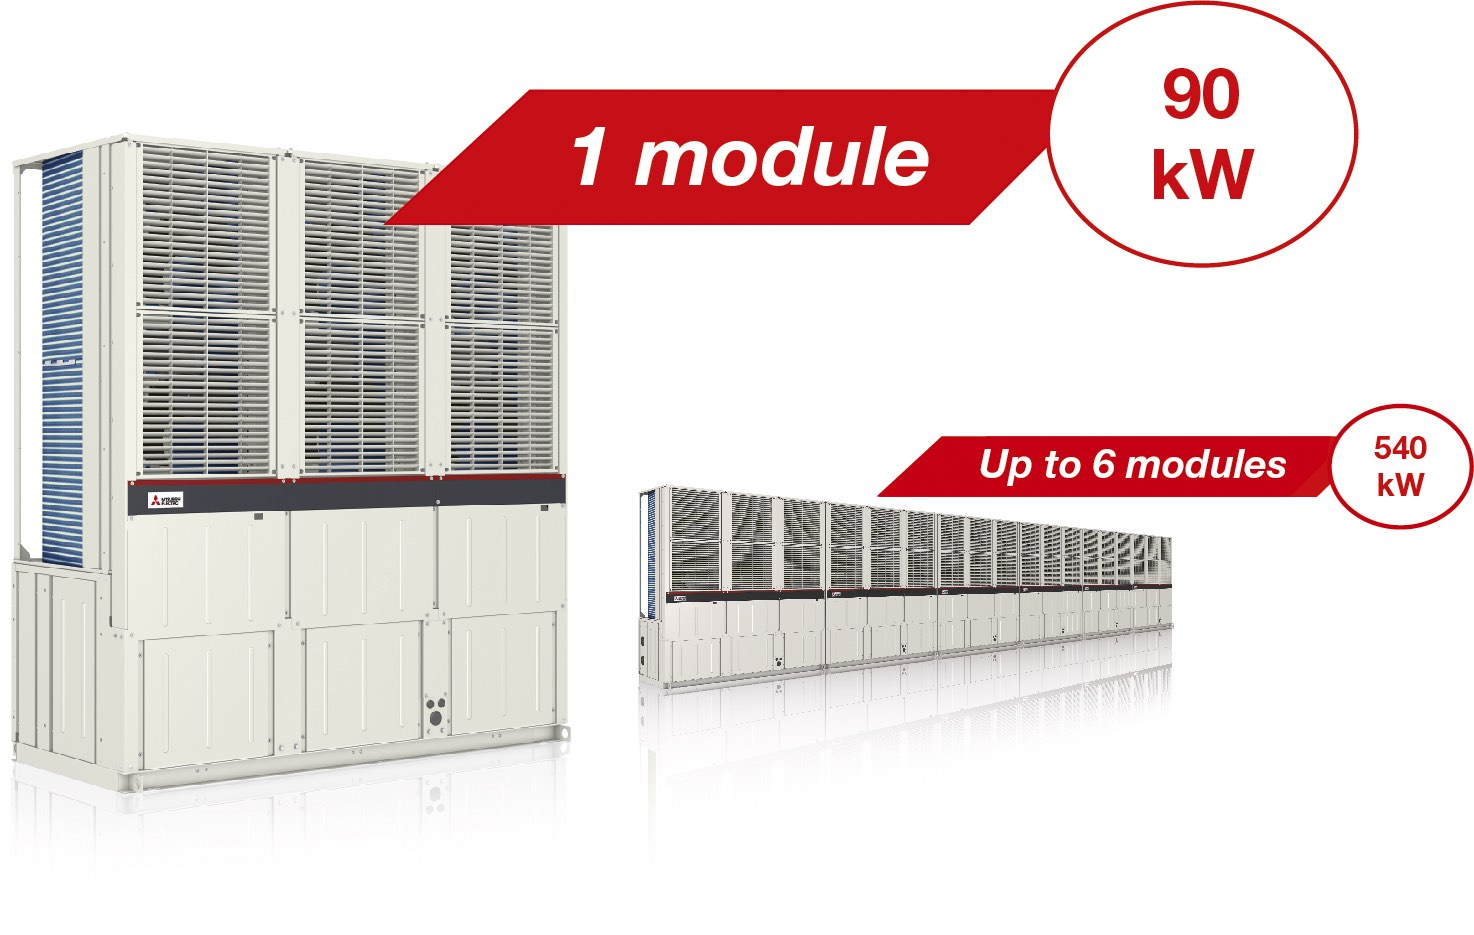 e-series // Chillers and heat pumps